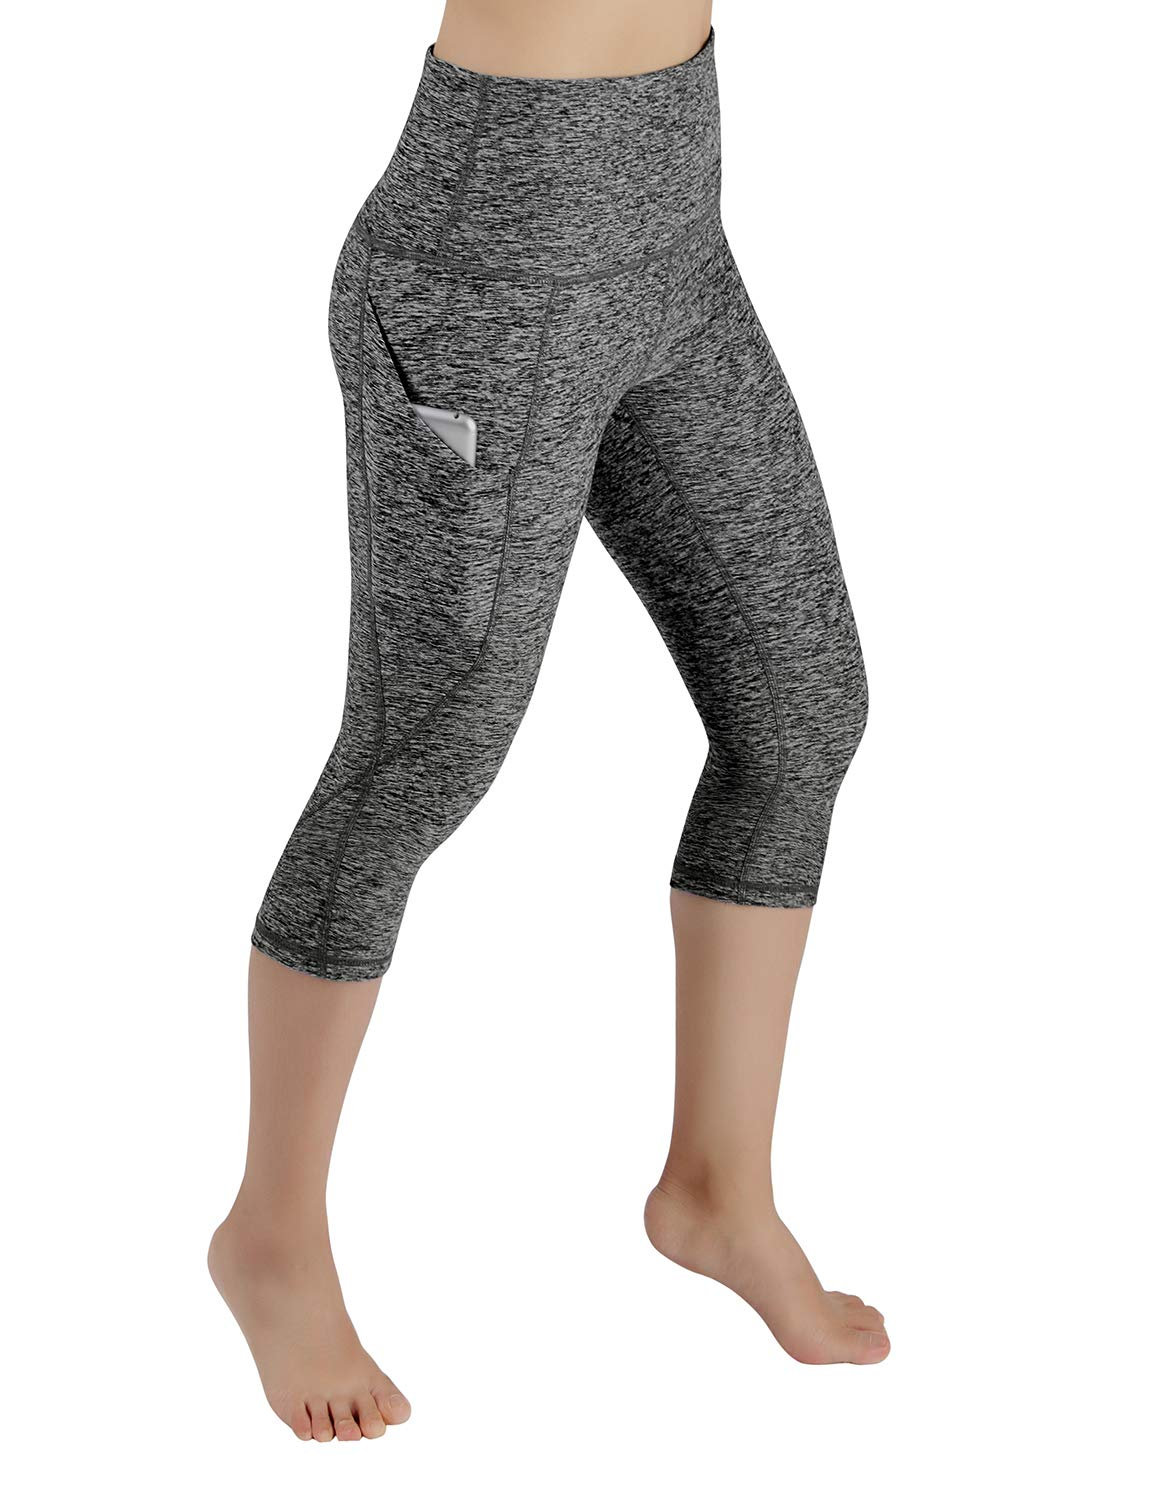 ODODOS Women's High Waist Yoga Capris with Pockets,Tummy Control,Workout Capris Running 4 Way Stretch Yoga Leggings with Pockets,CharcoalHeather,XX-Large by ODODOS